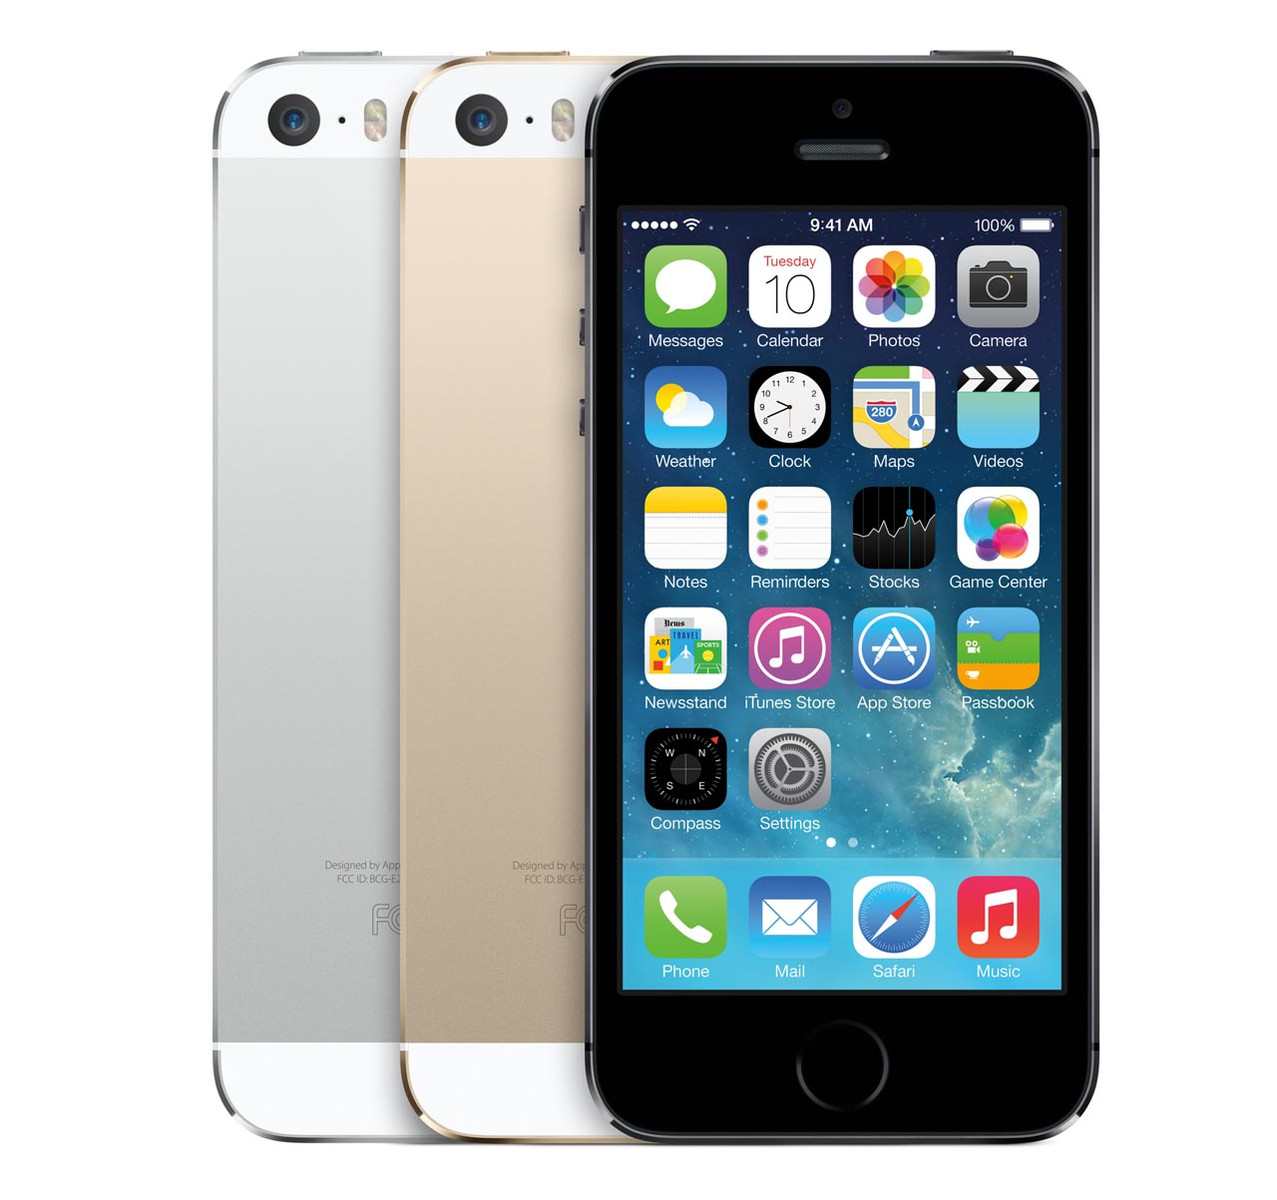 apple iphone 5s notebookcheckit